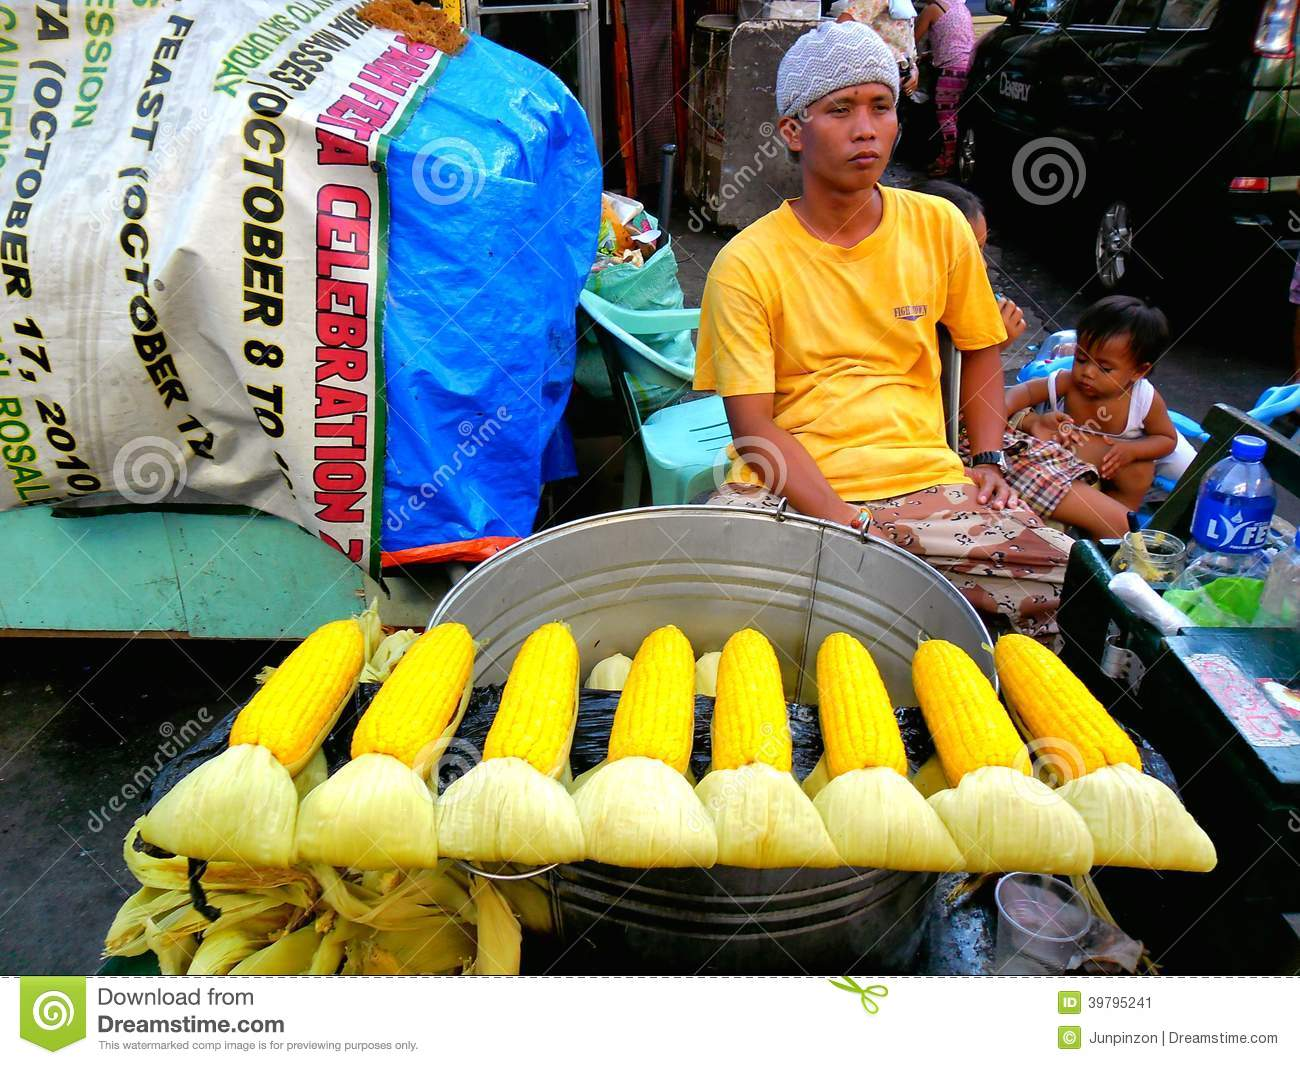 Top 10 Street Food Business Ideas in the Philippines